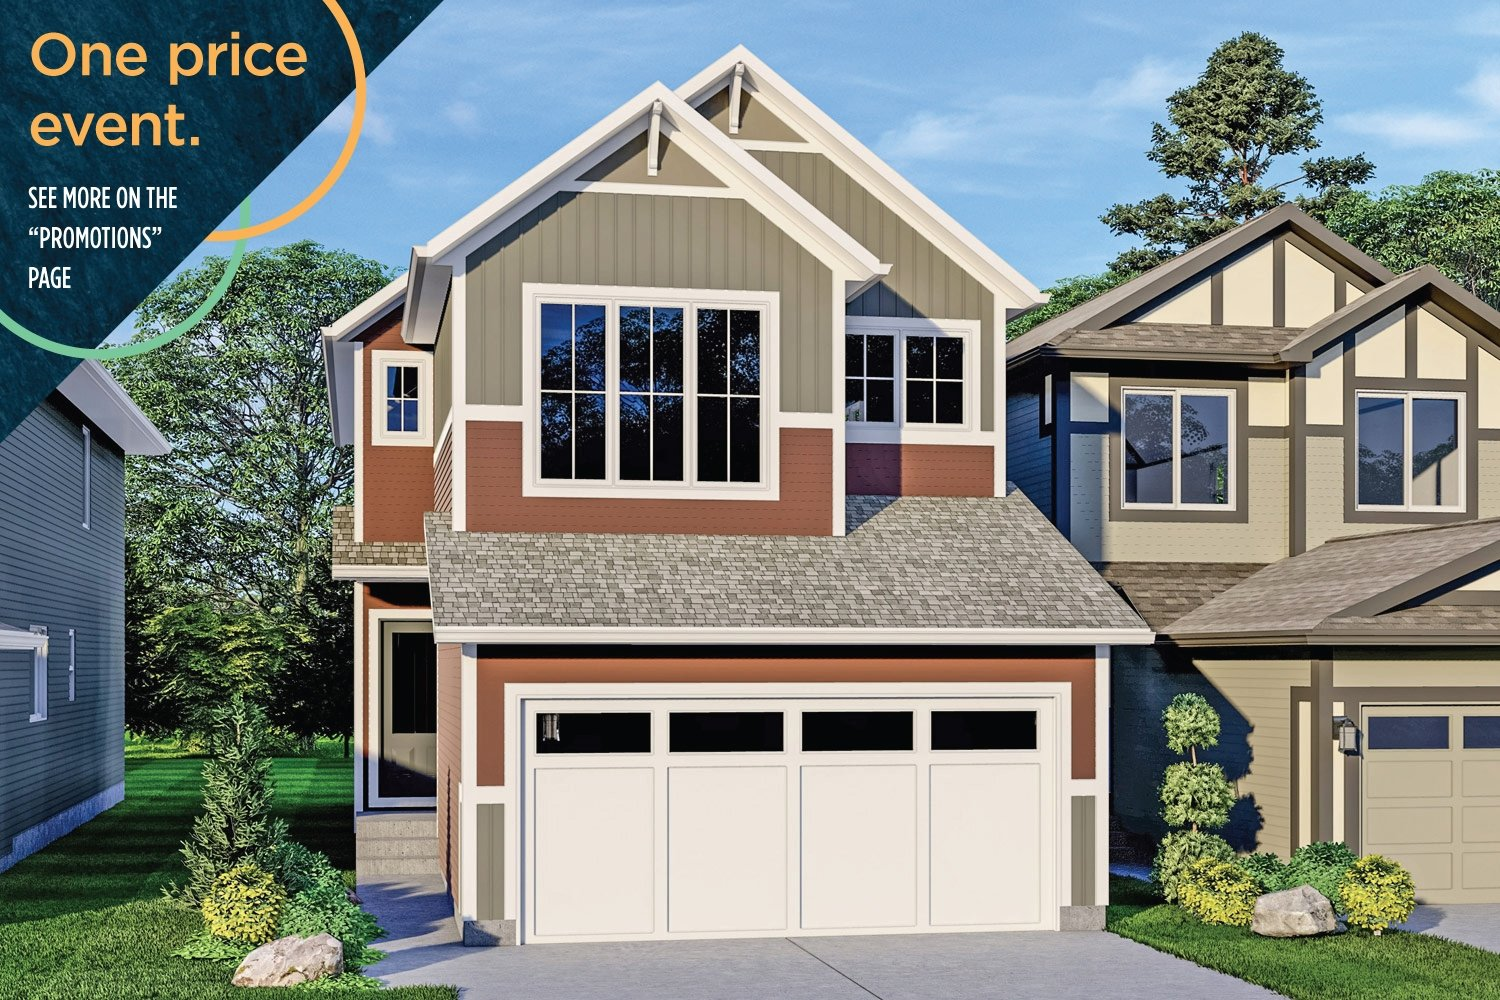 Exterior render hartwell promo ope2021